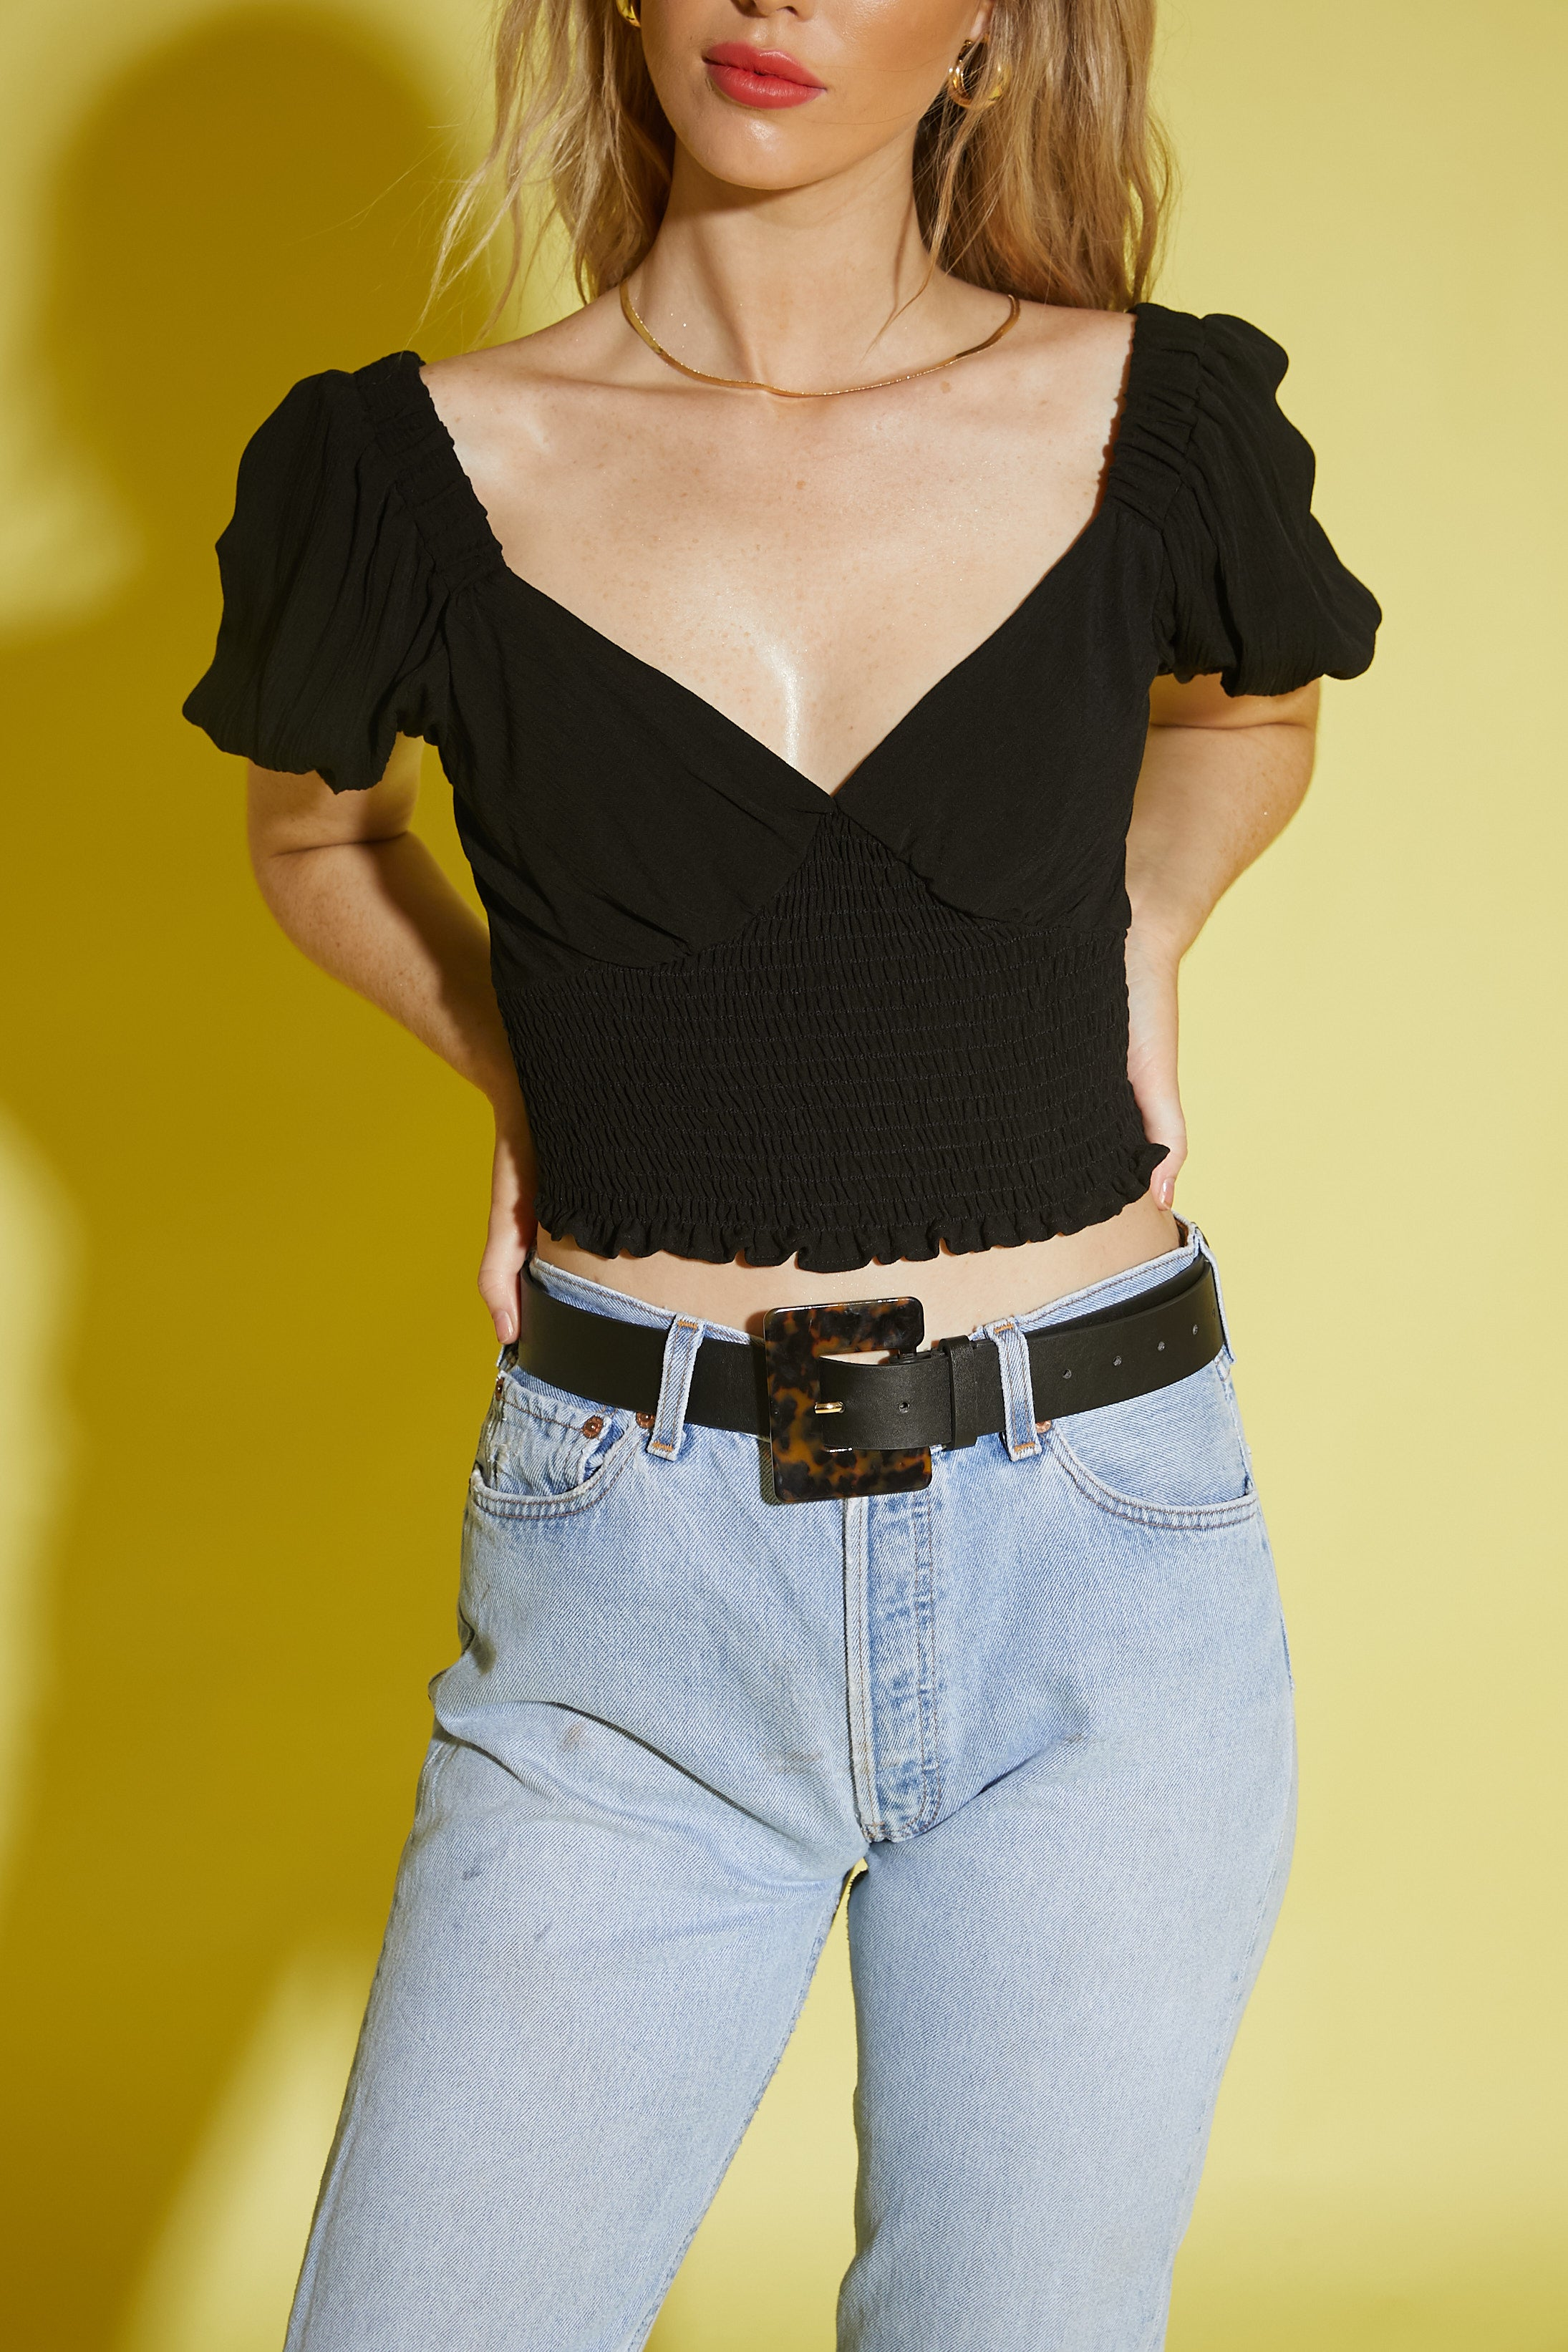 French Made Crop Top